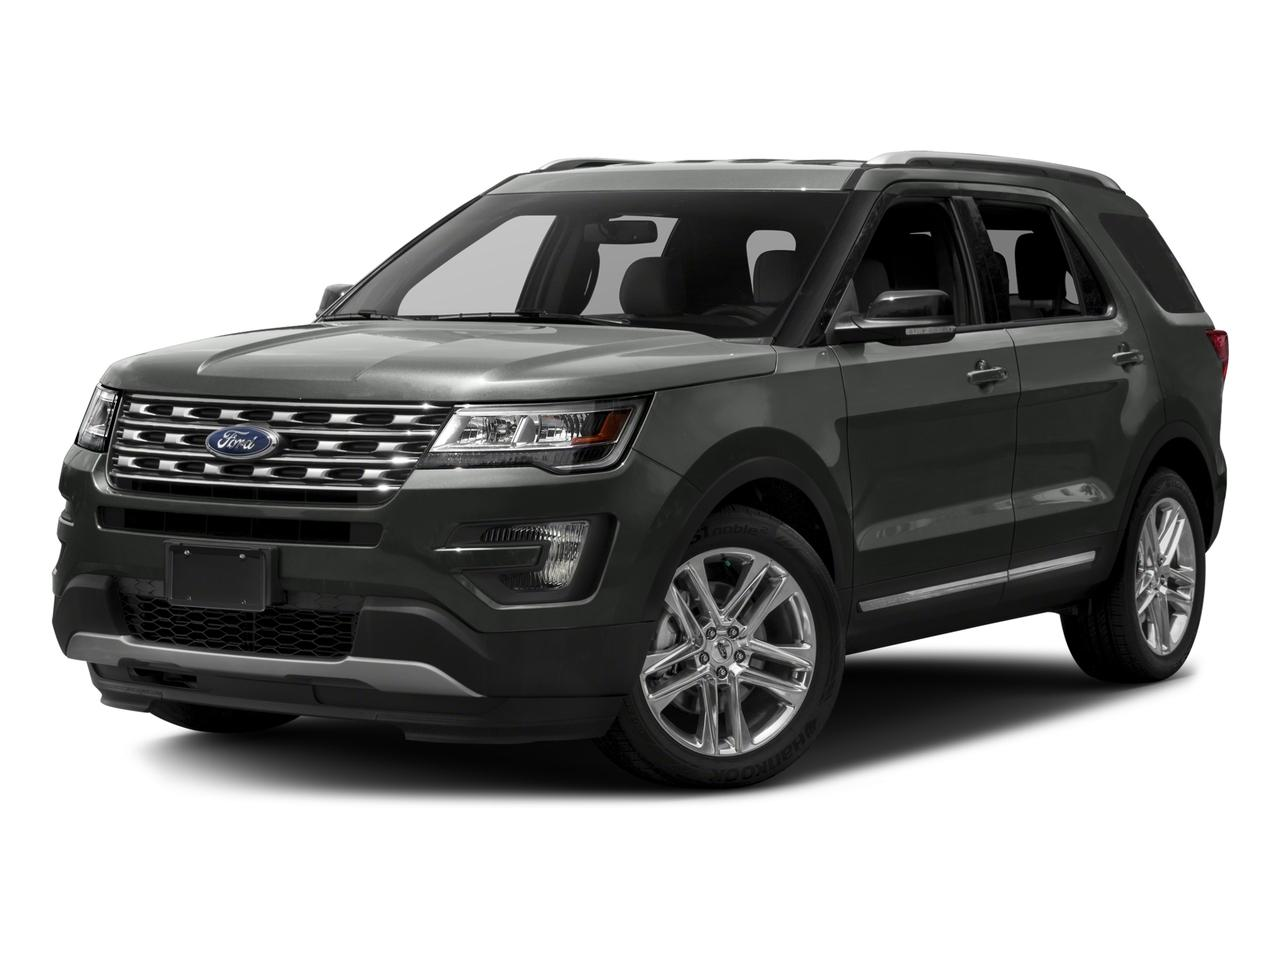 2016 Ford Explorer Vehicle Photo in Baton Rouge, LA 70806